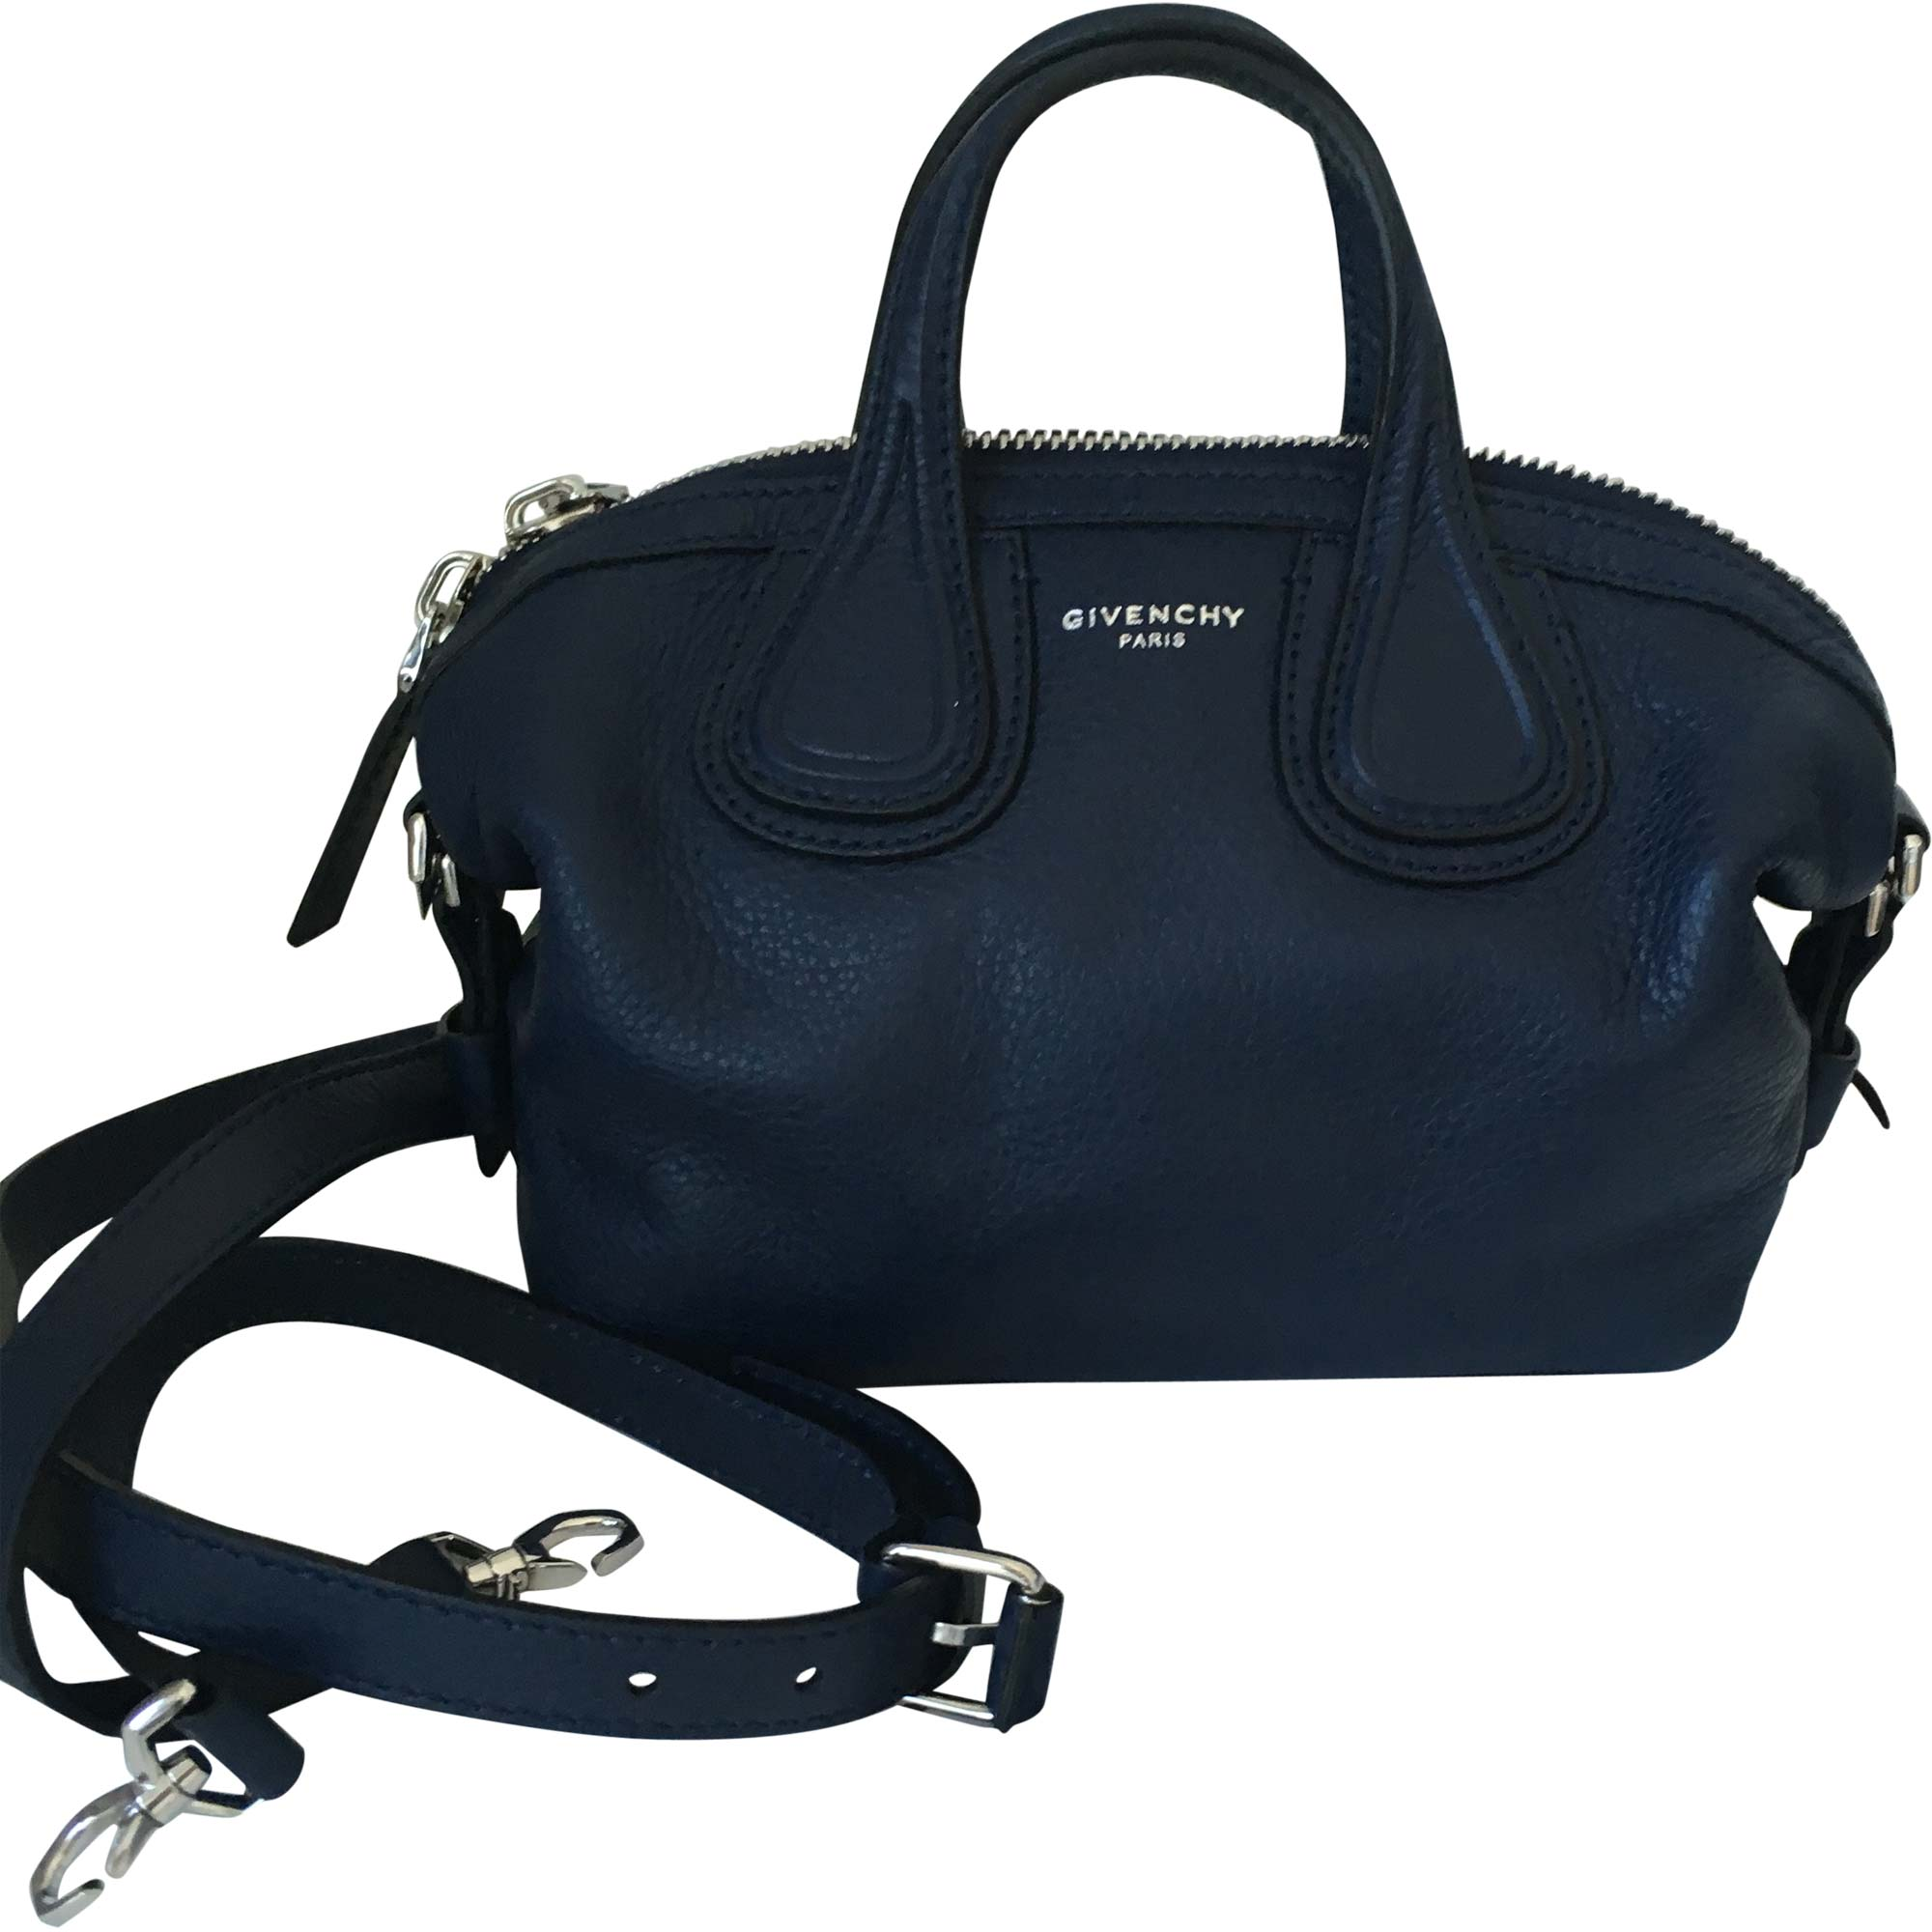 Leather Handbag GIVENCHY Nightingale Blue, navy, turquoise